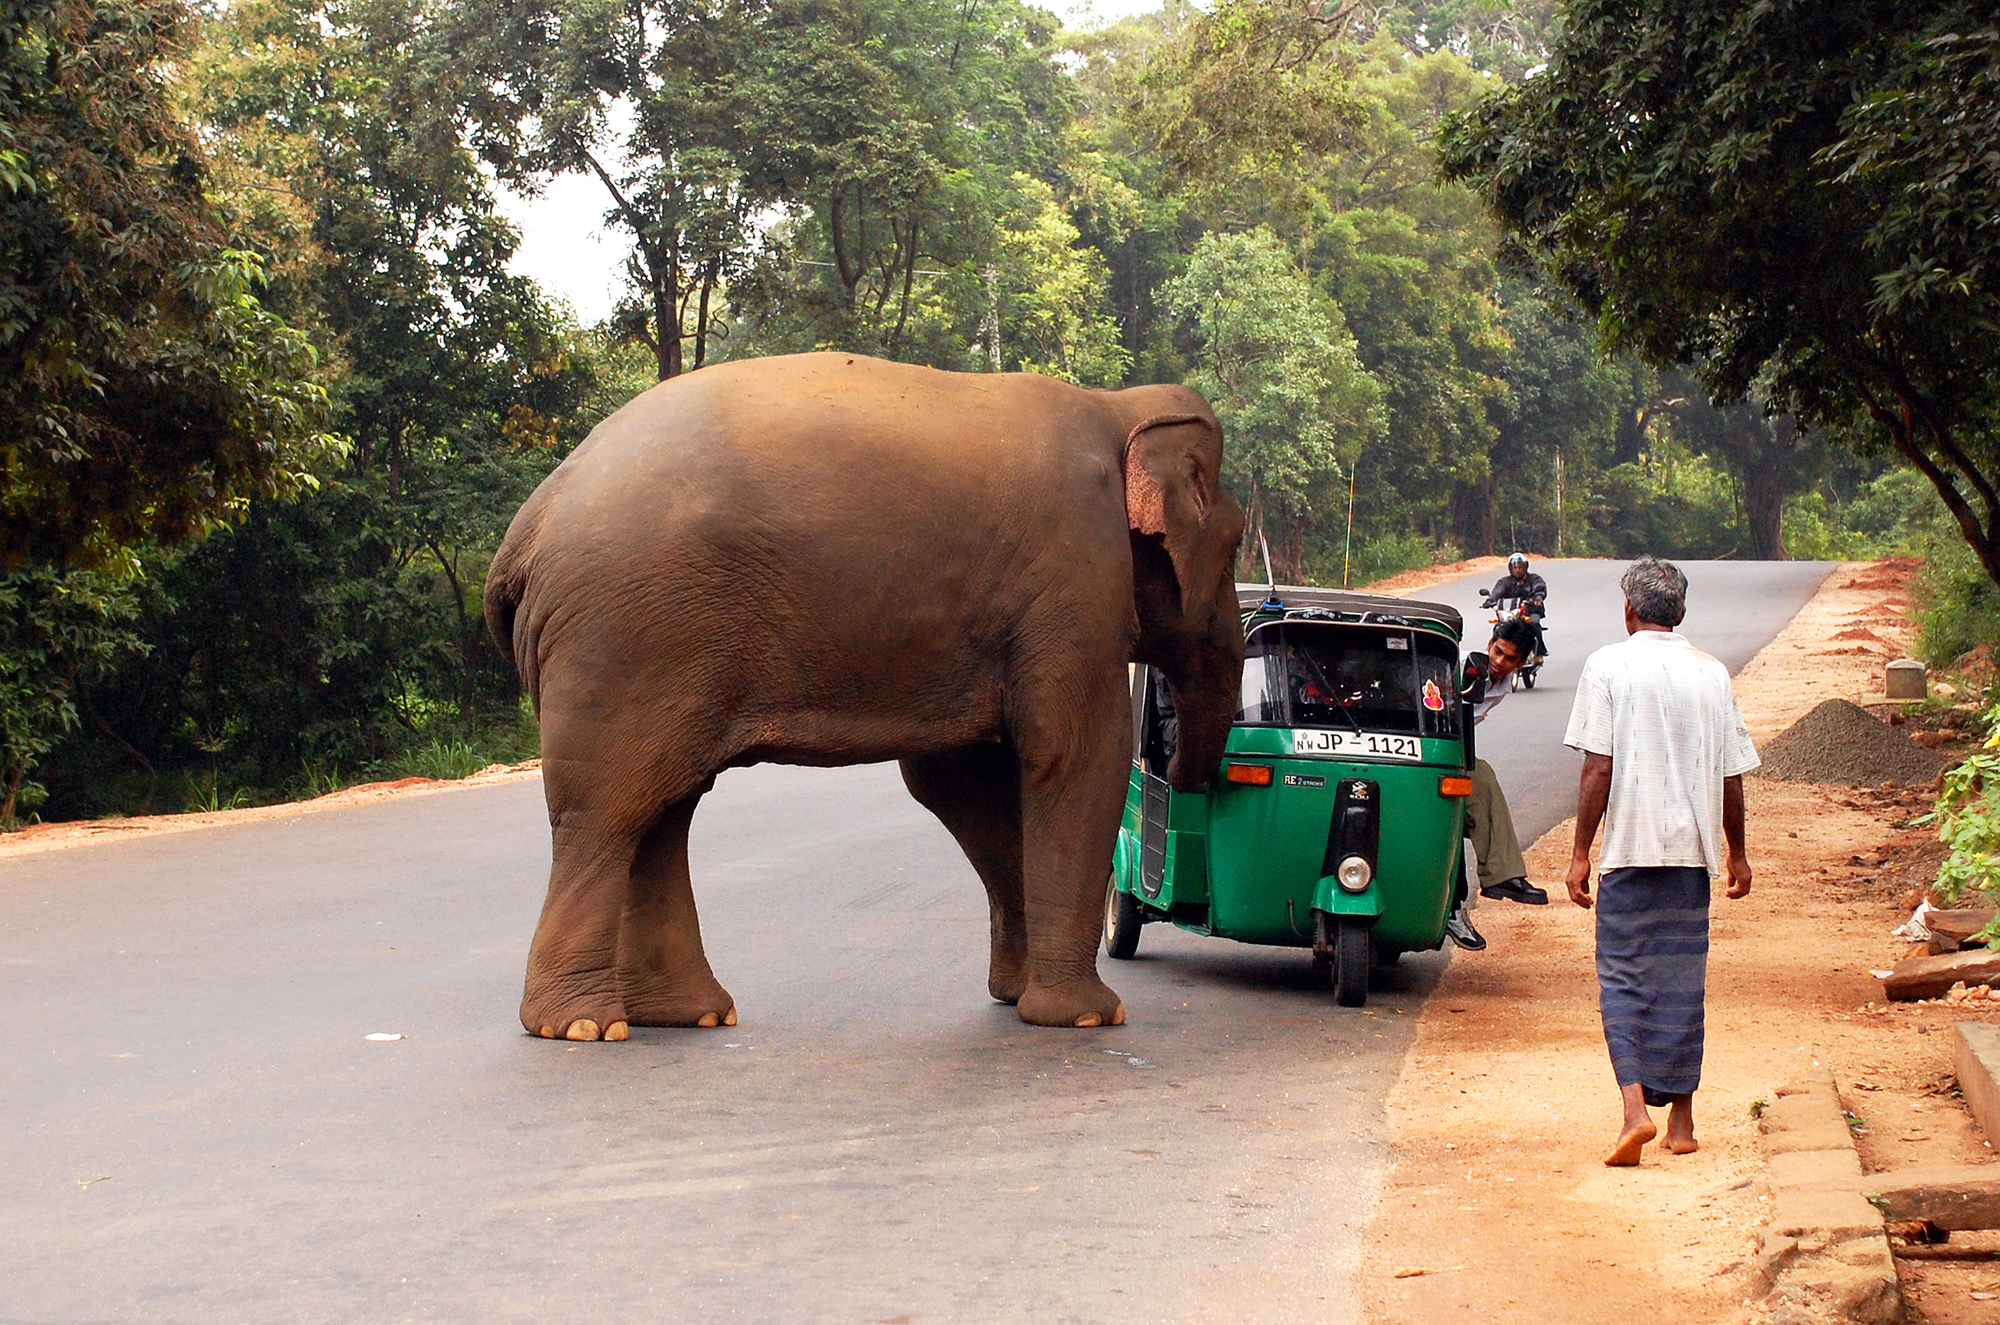 Elephant Attacking a 3-wheeler : Elephants attack